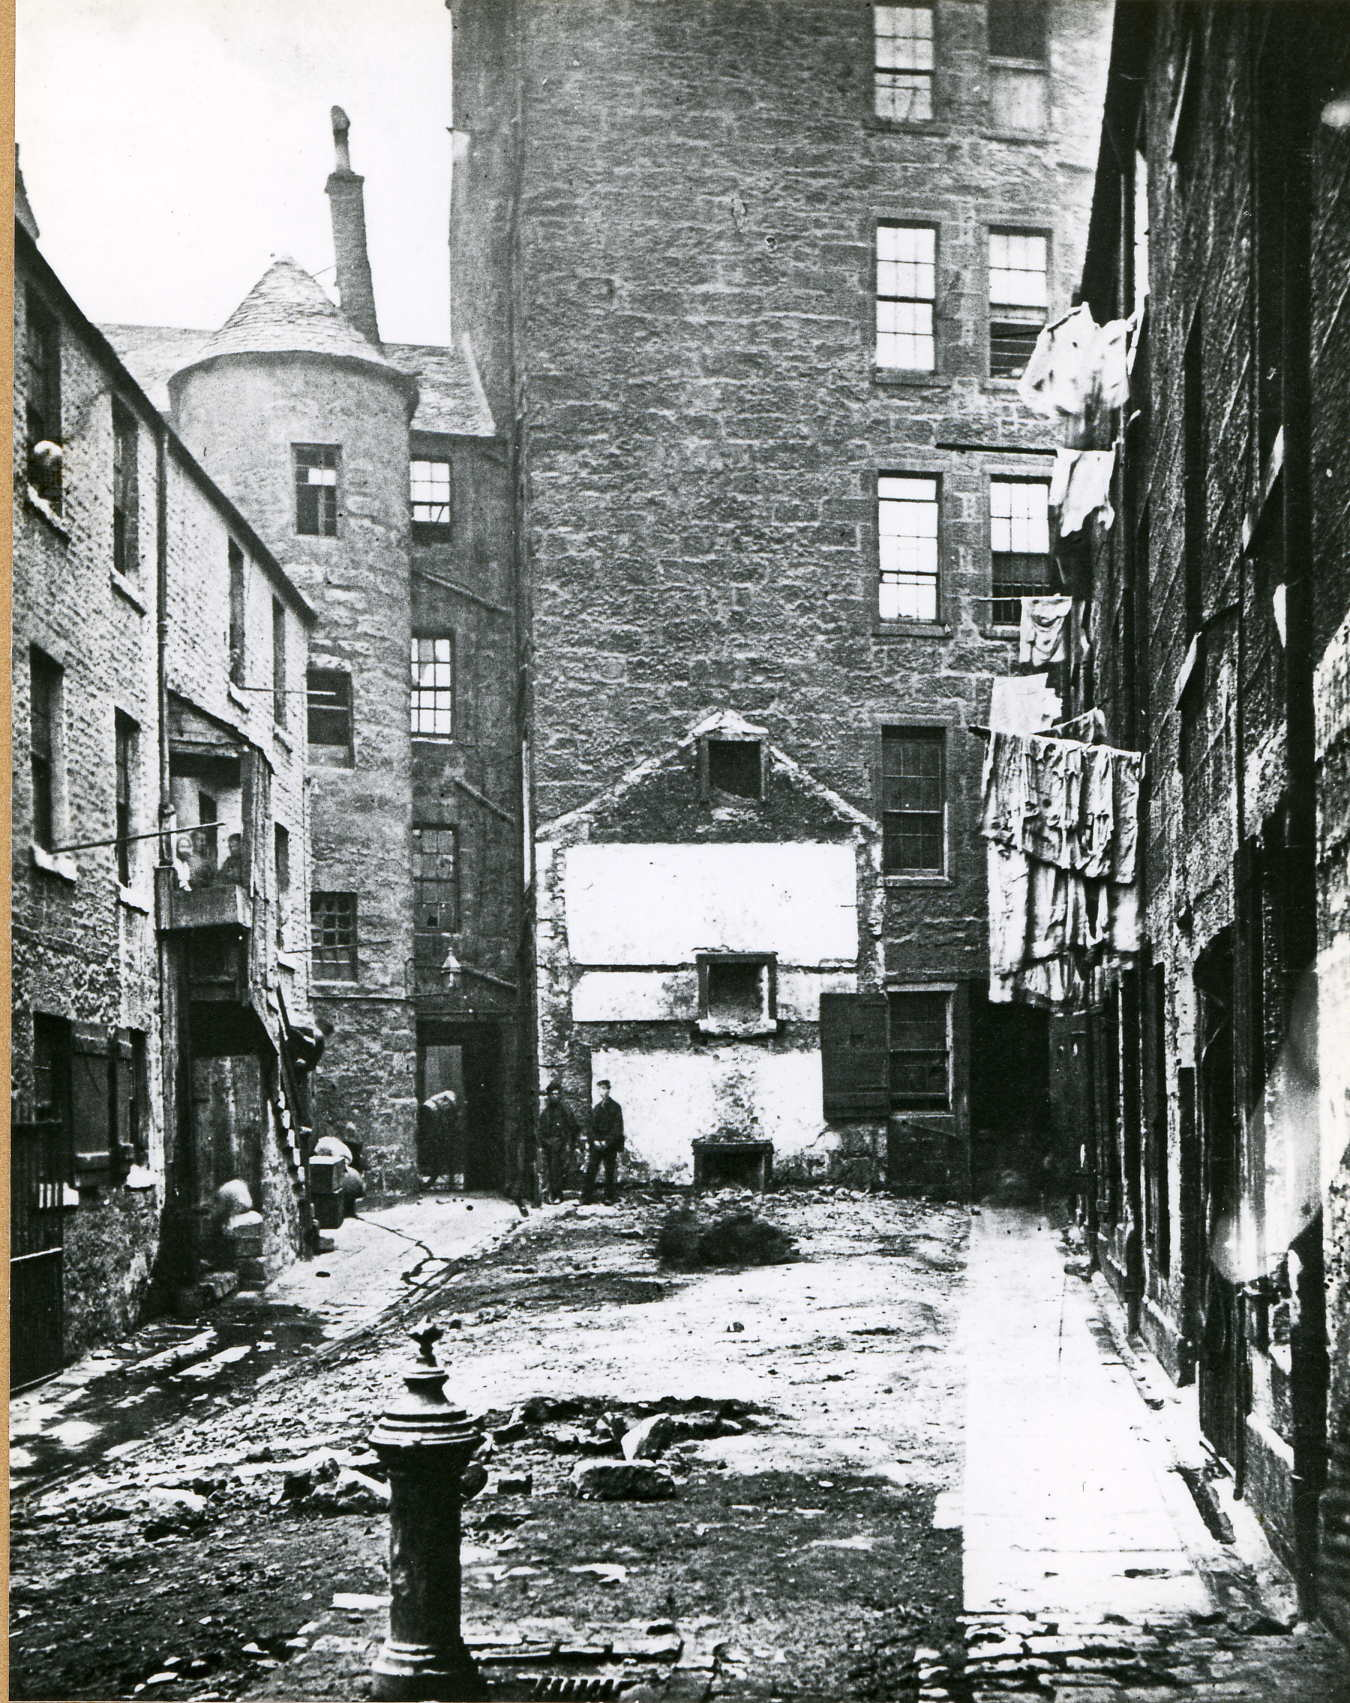 A photograph from Thomas Annan's Slums of Glasgow album